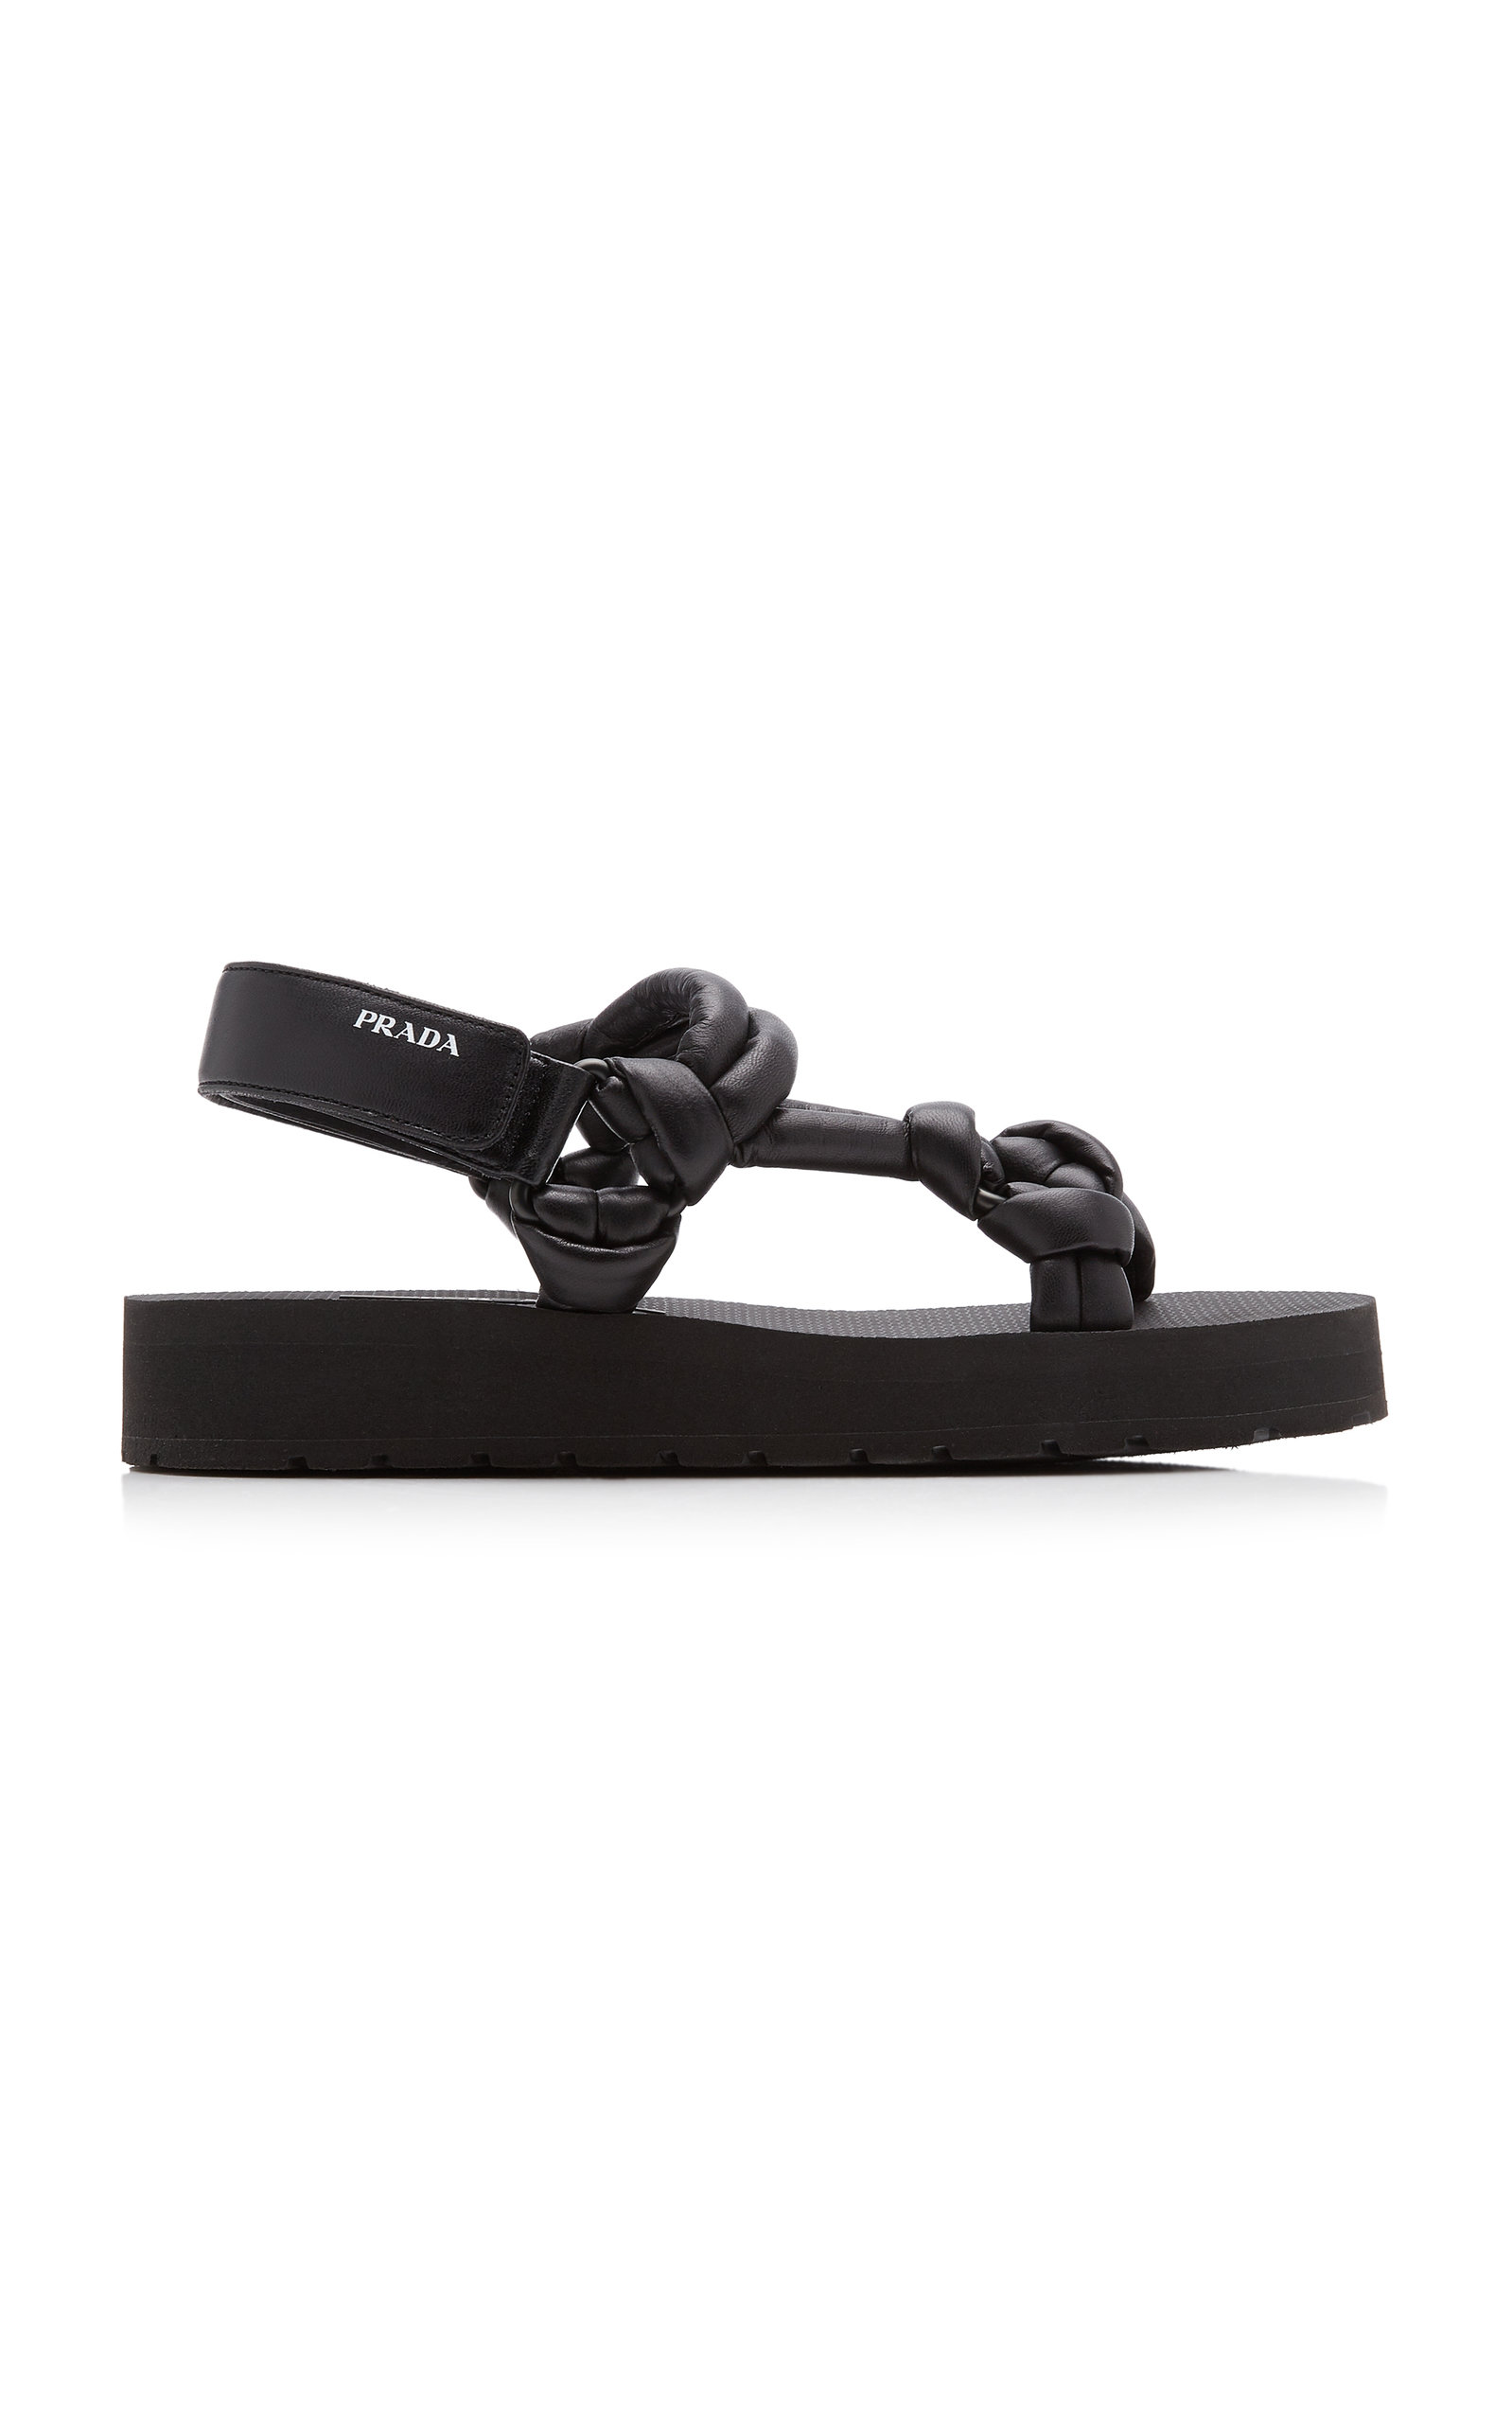 Prada WOMEN'S KNOTTED PADDED LEATHER SANDALS